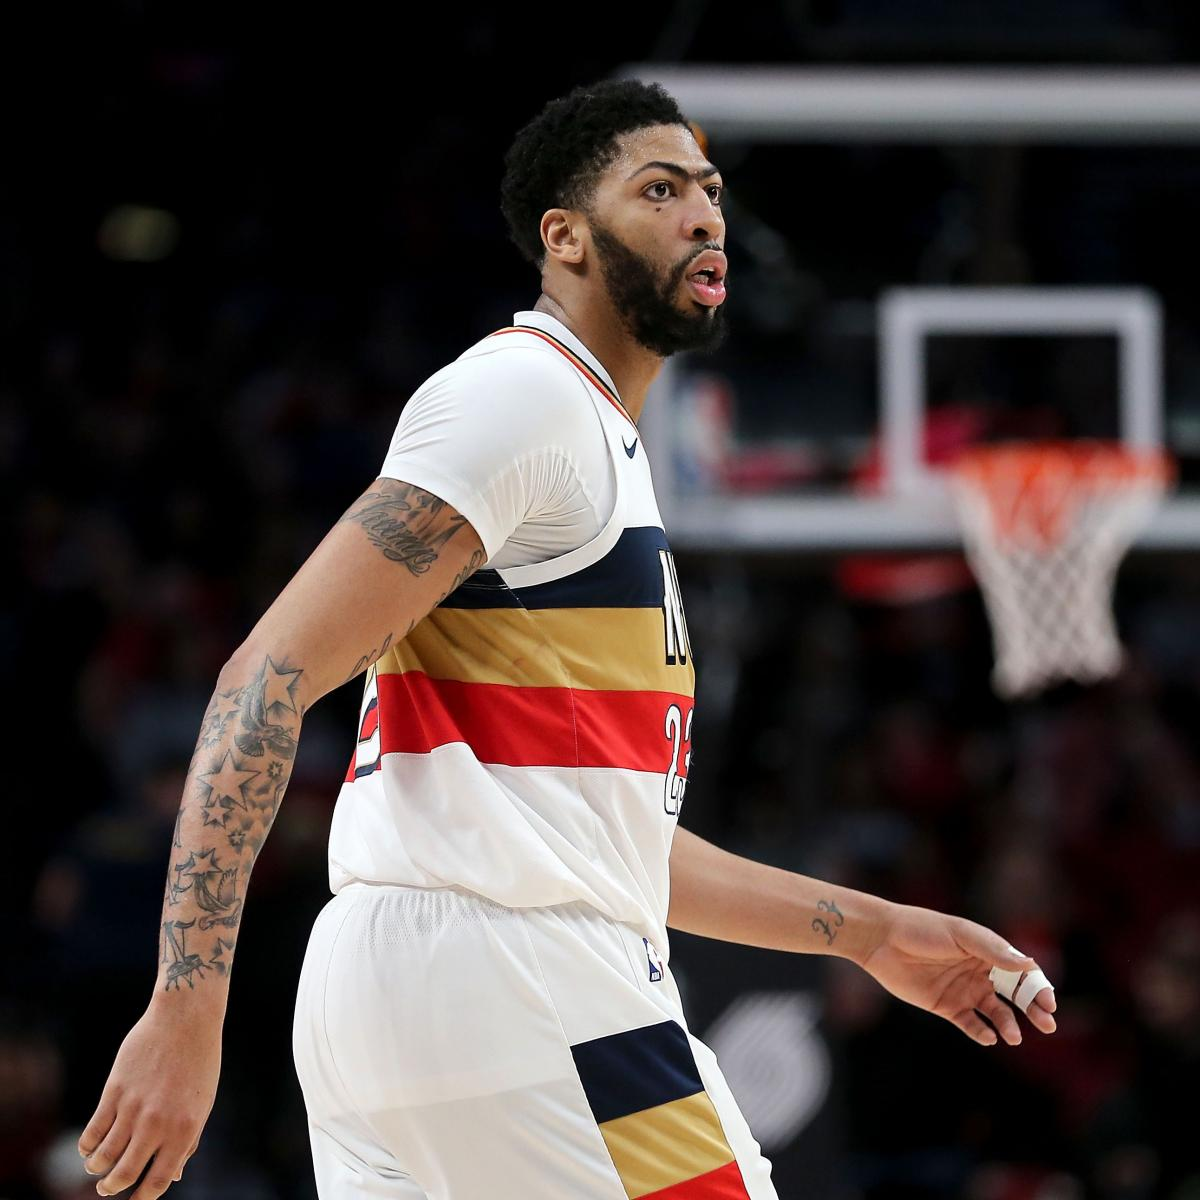 Anthony Davis Out 1-2 Weeks With Sprained Finger Injury